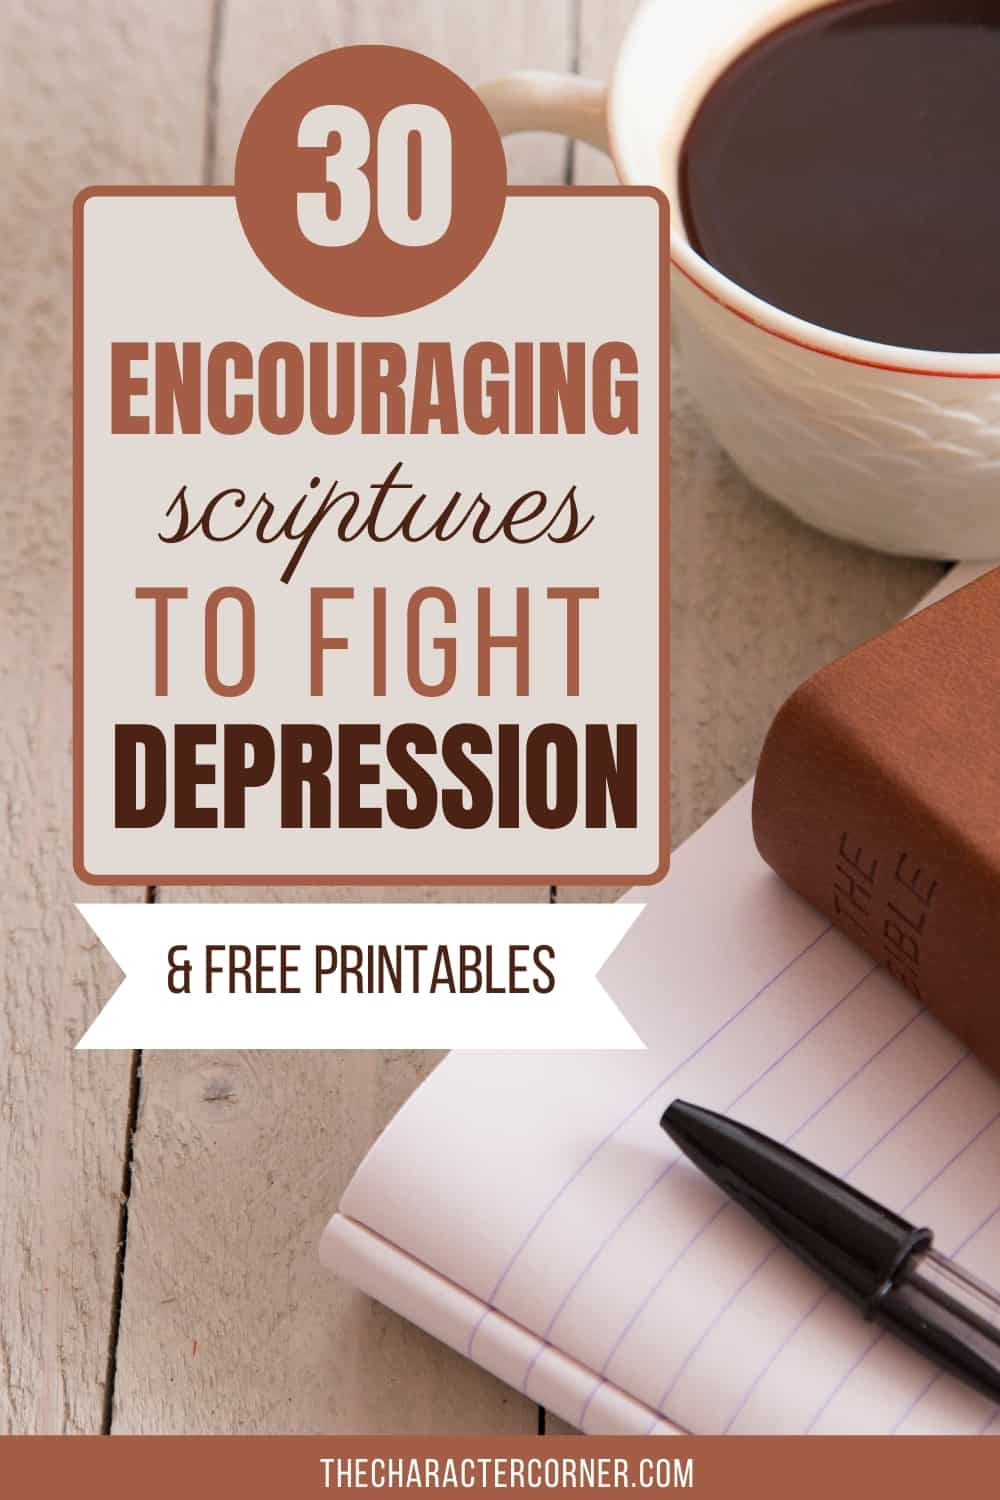 Bible Journal and Coffee text on image reads:30 Encouraging Scriptures to Fight Depression